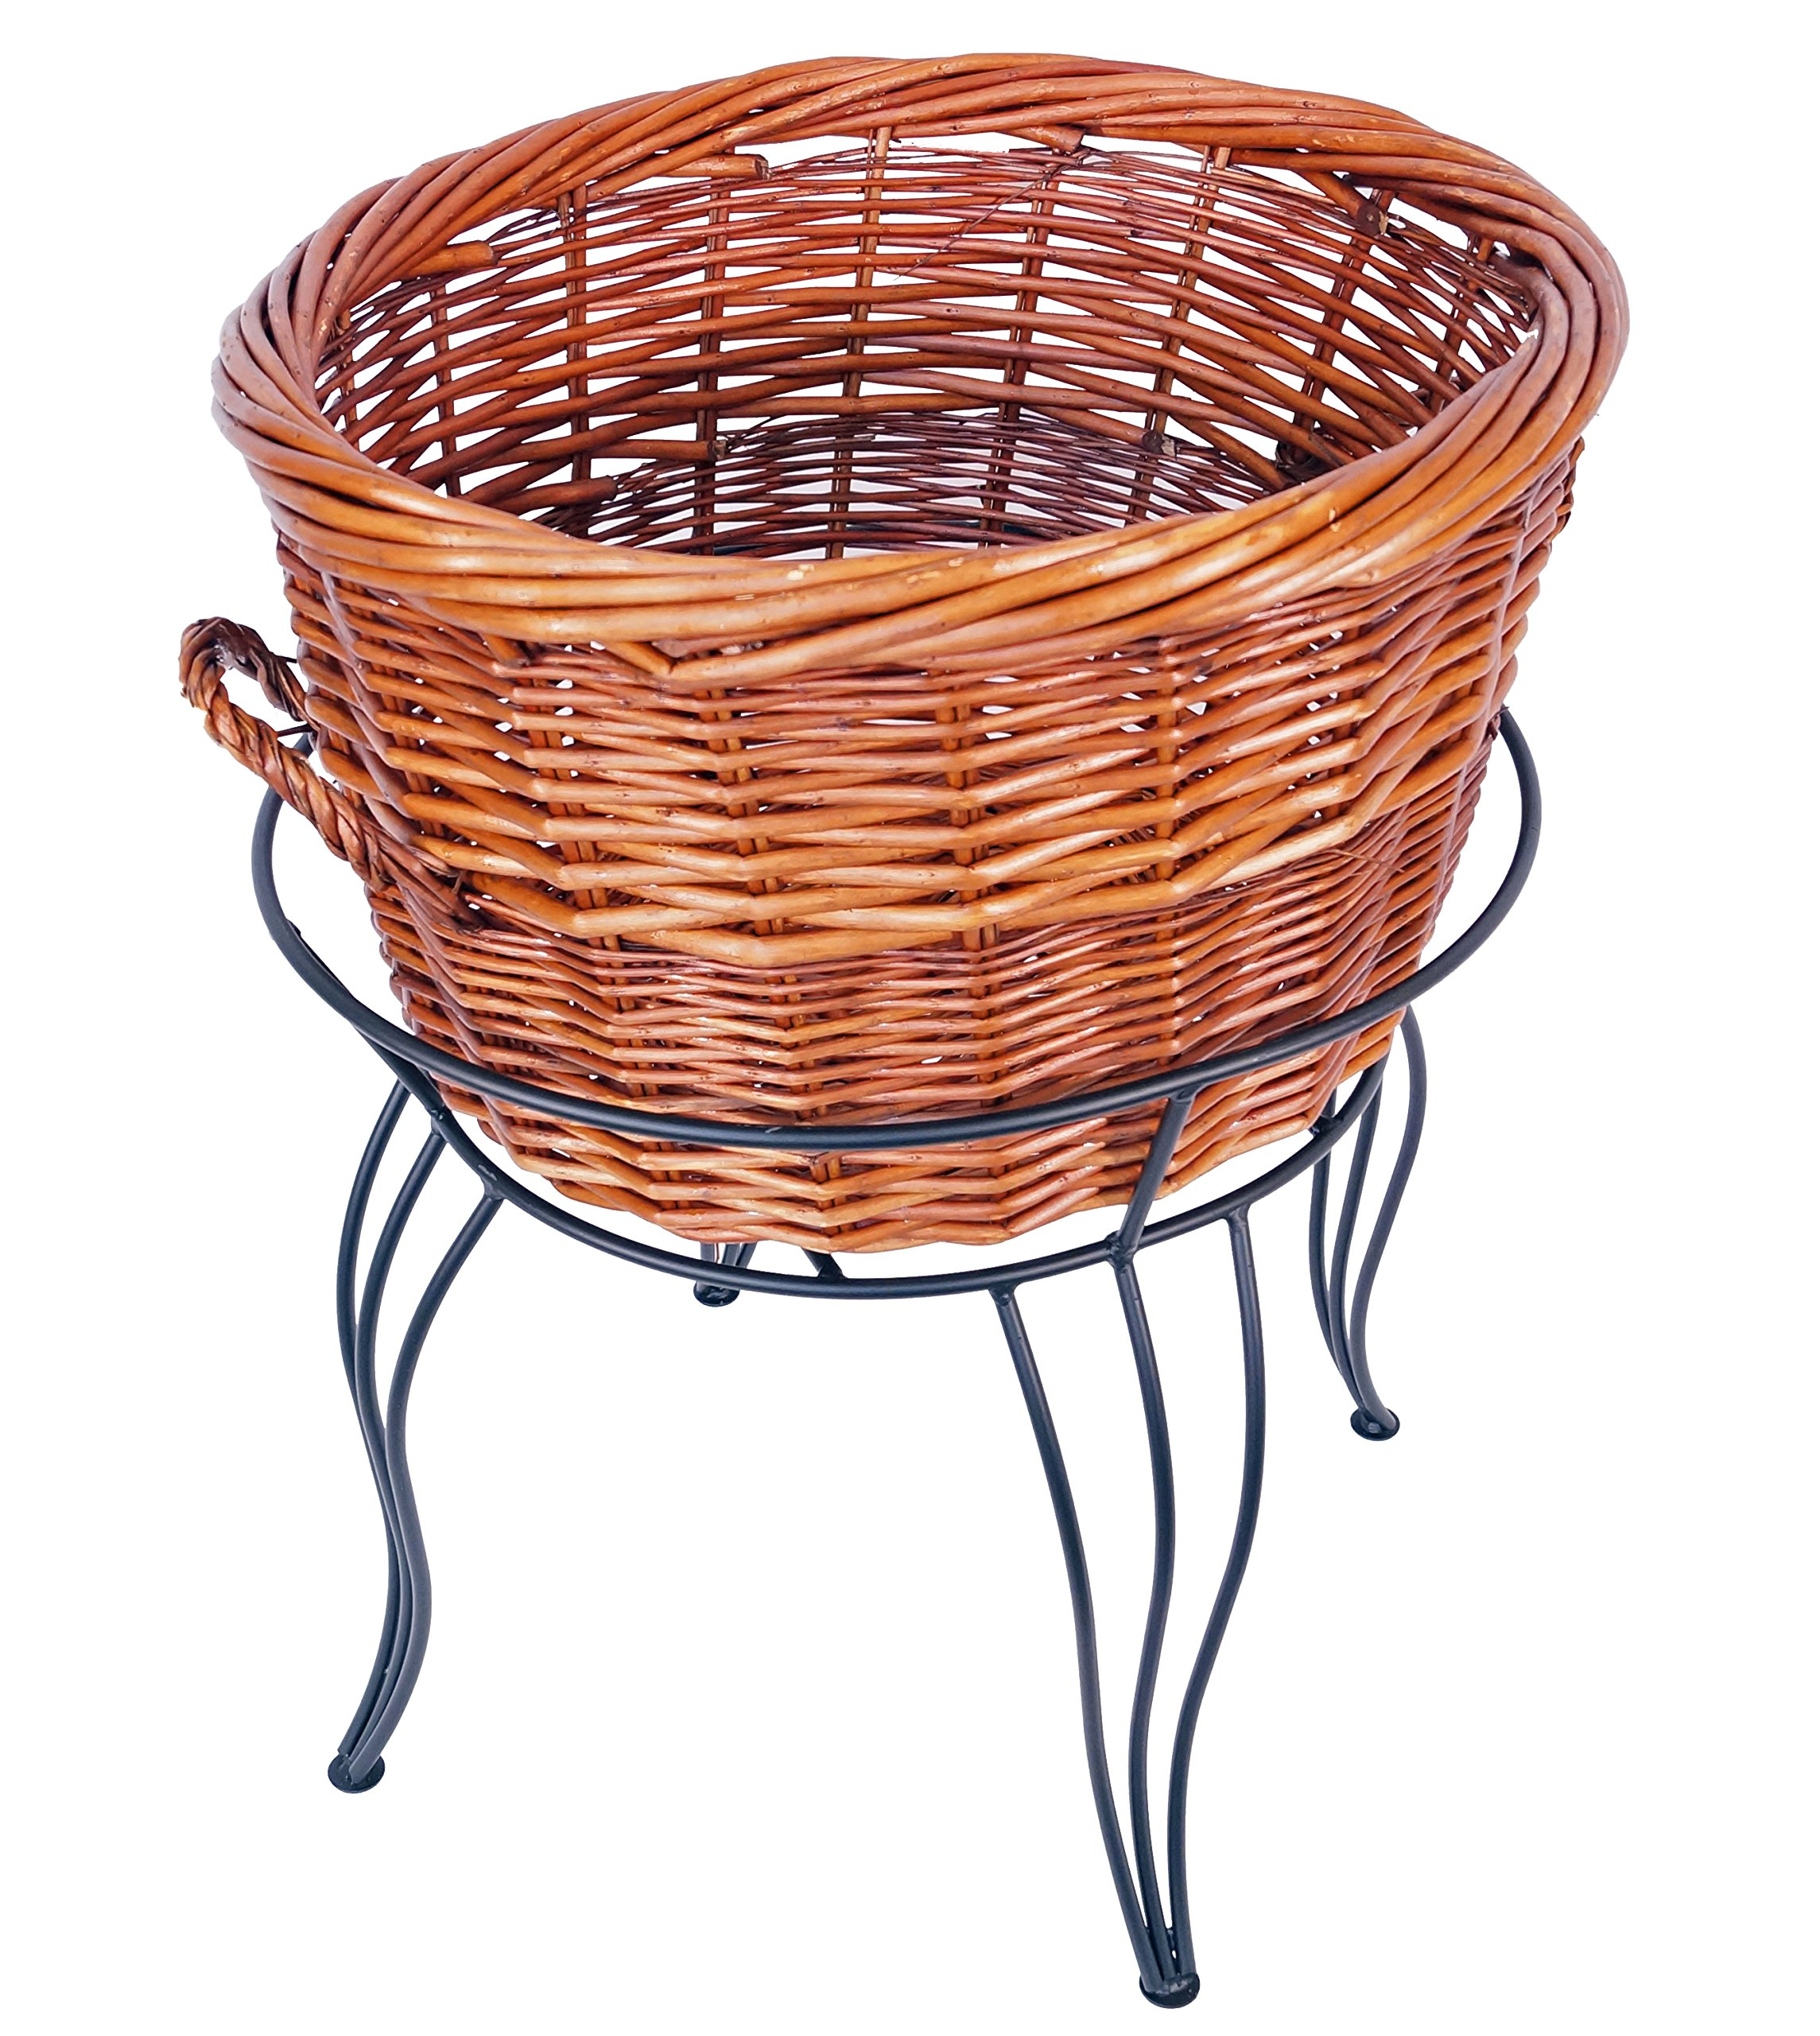 27''H Large Round Willow Basket and Floor Stand Display Rack with Sign Clip